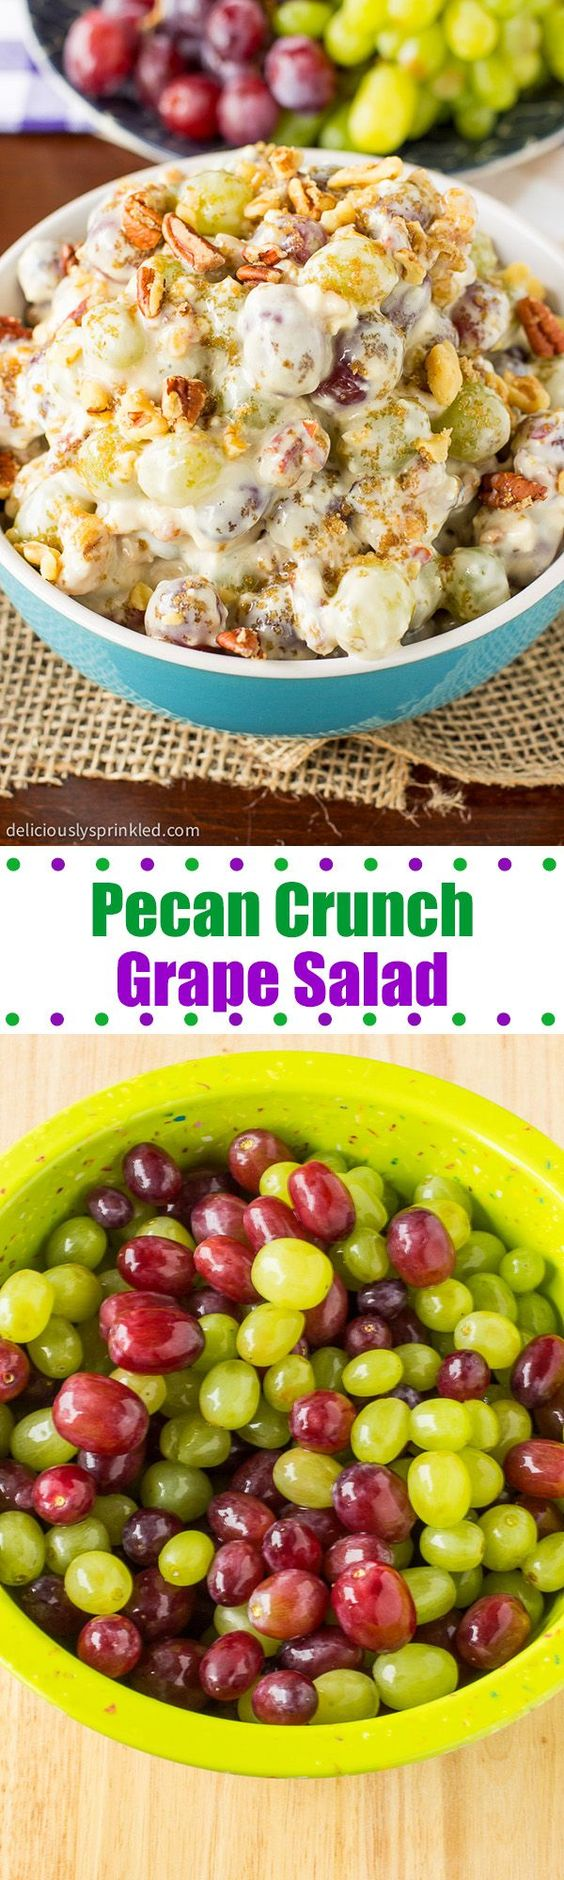 PECAN CRUNCH GRAPE SALAD RECIPE